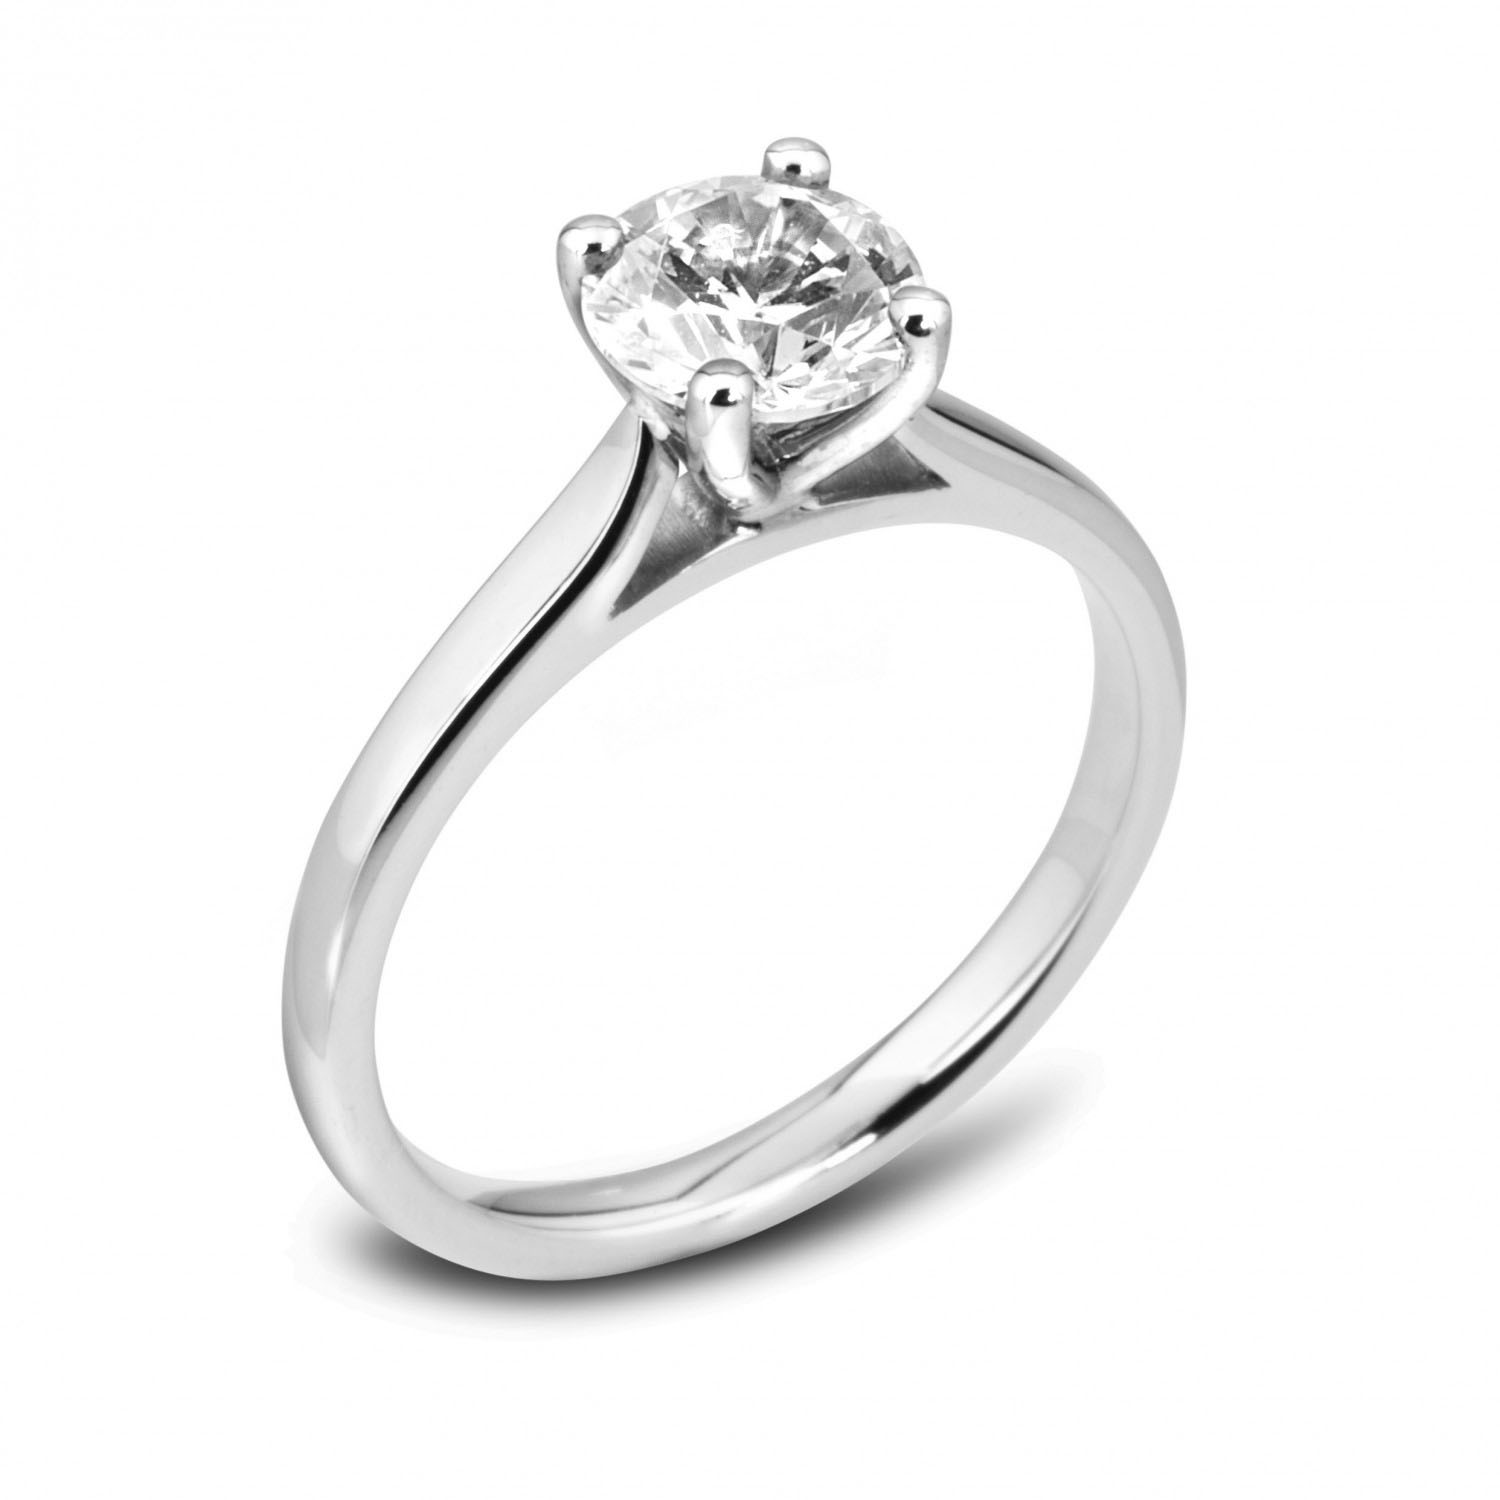 ring bridal engagement rings us db my women for beautiful classic de jewellery beers diamond first